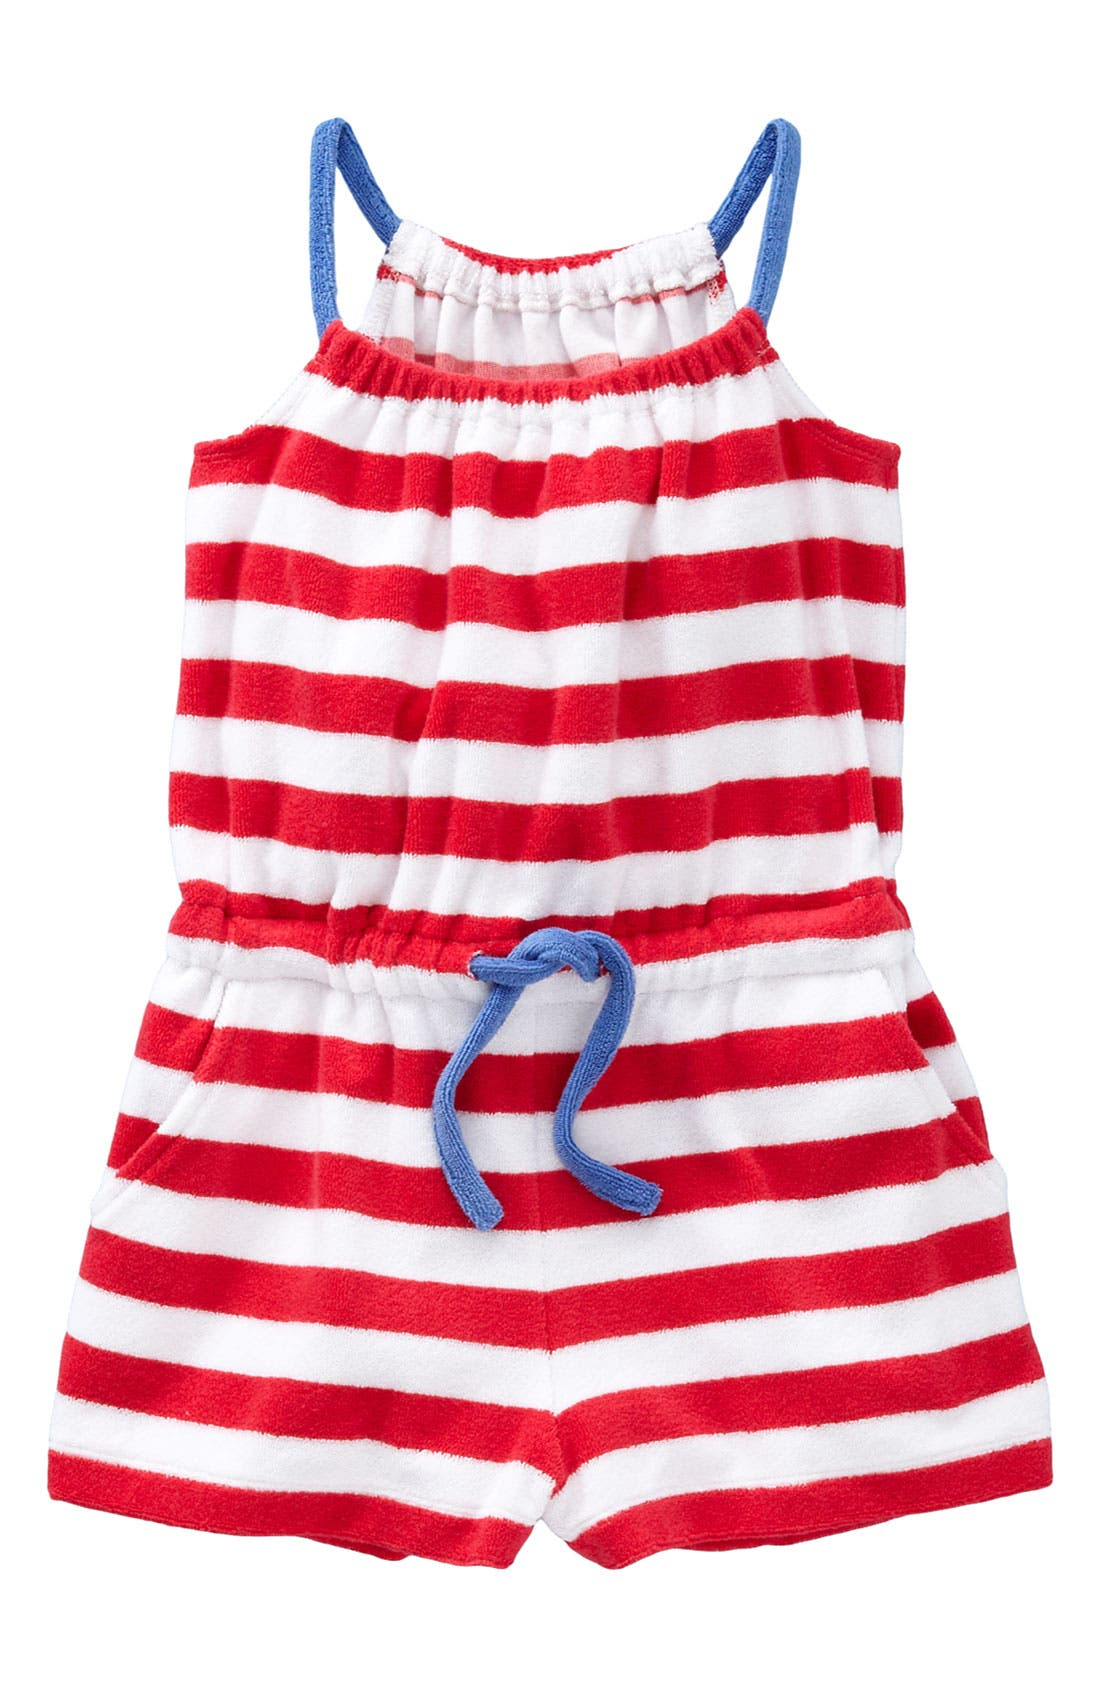 Alternate Image 1 Selected - Mini Boden Romper (Toddler)